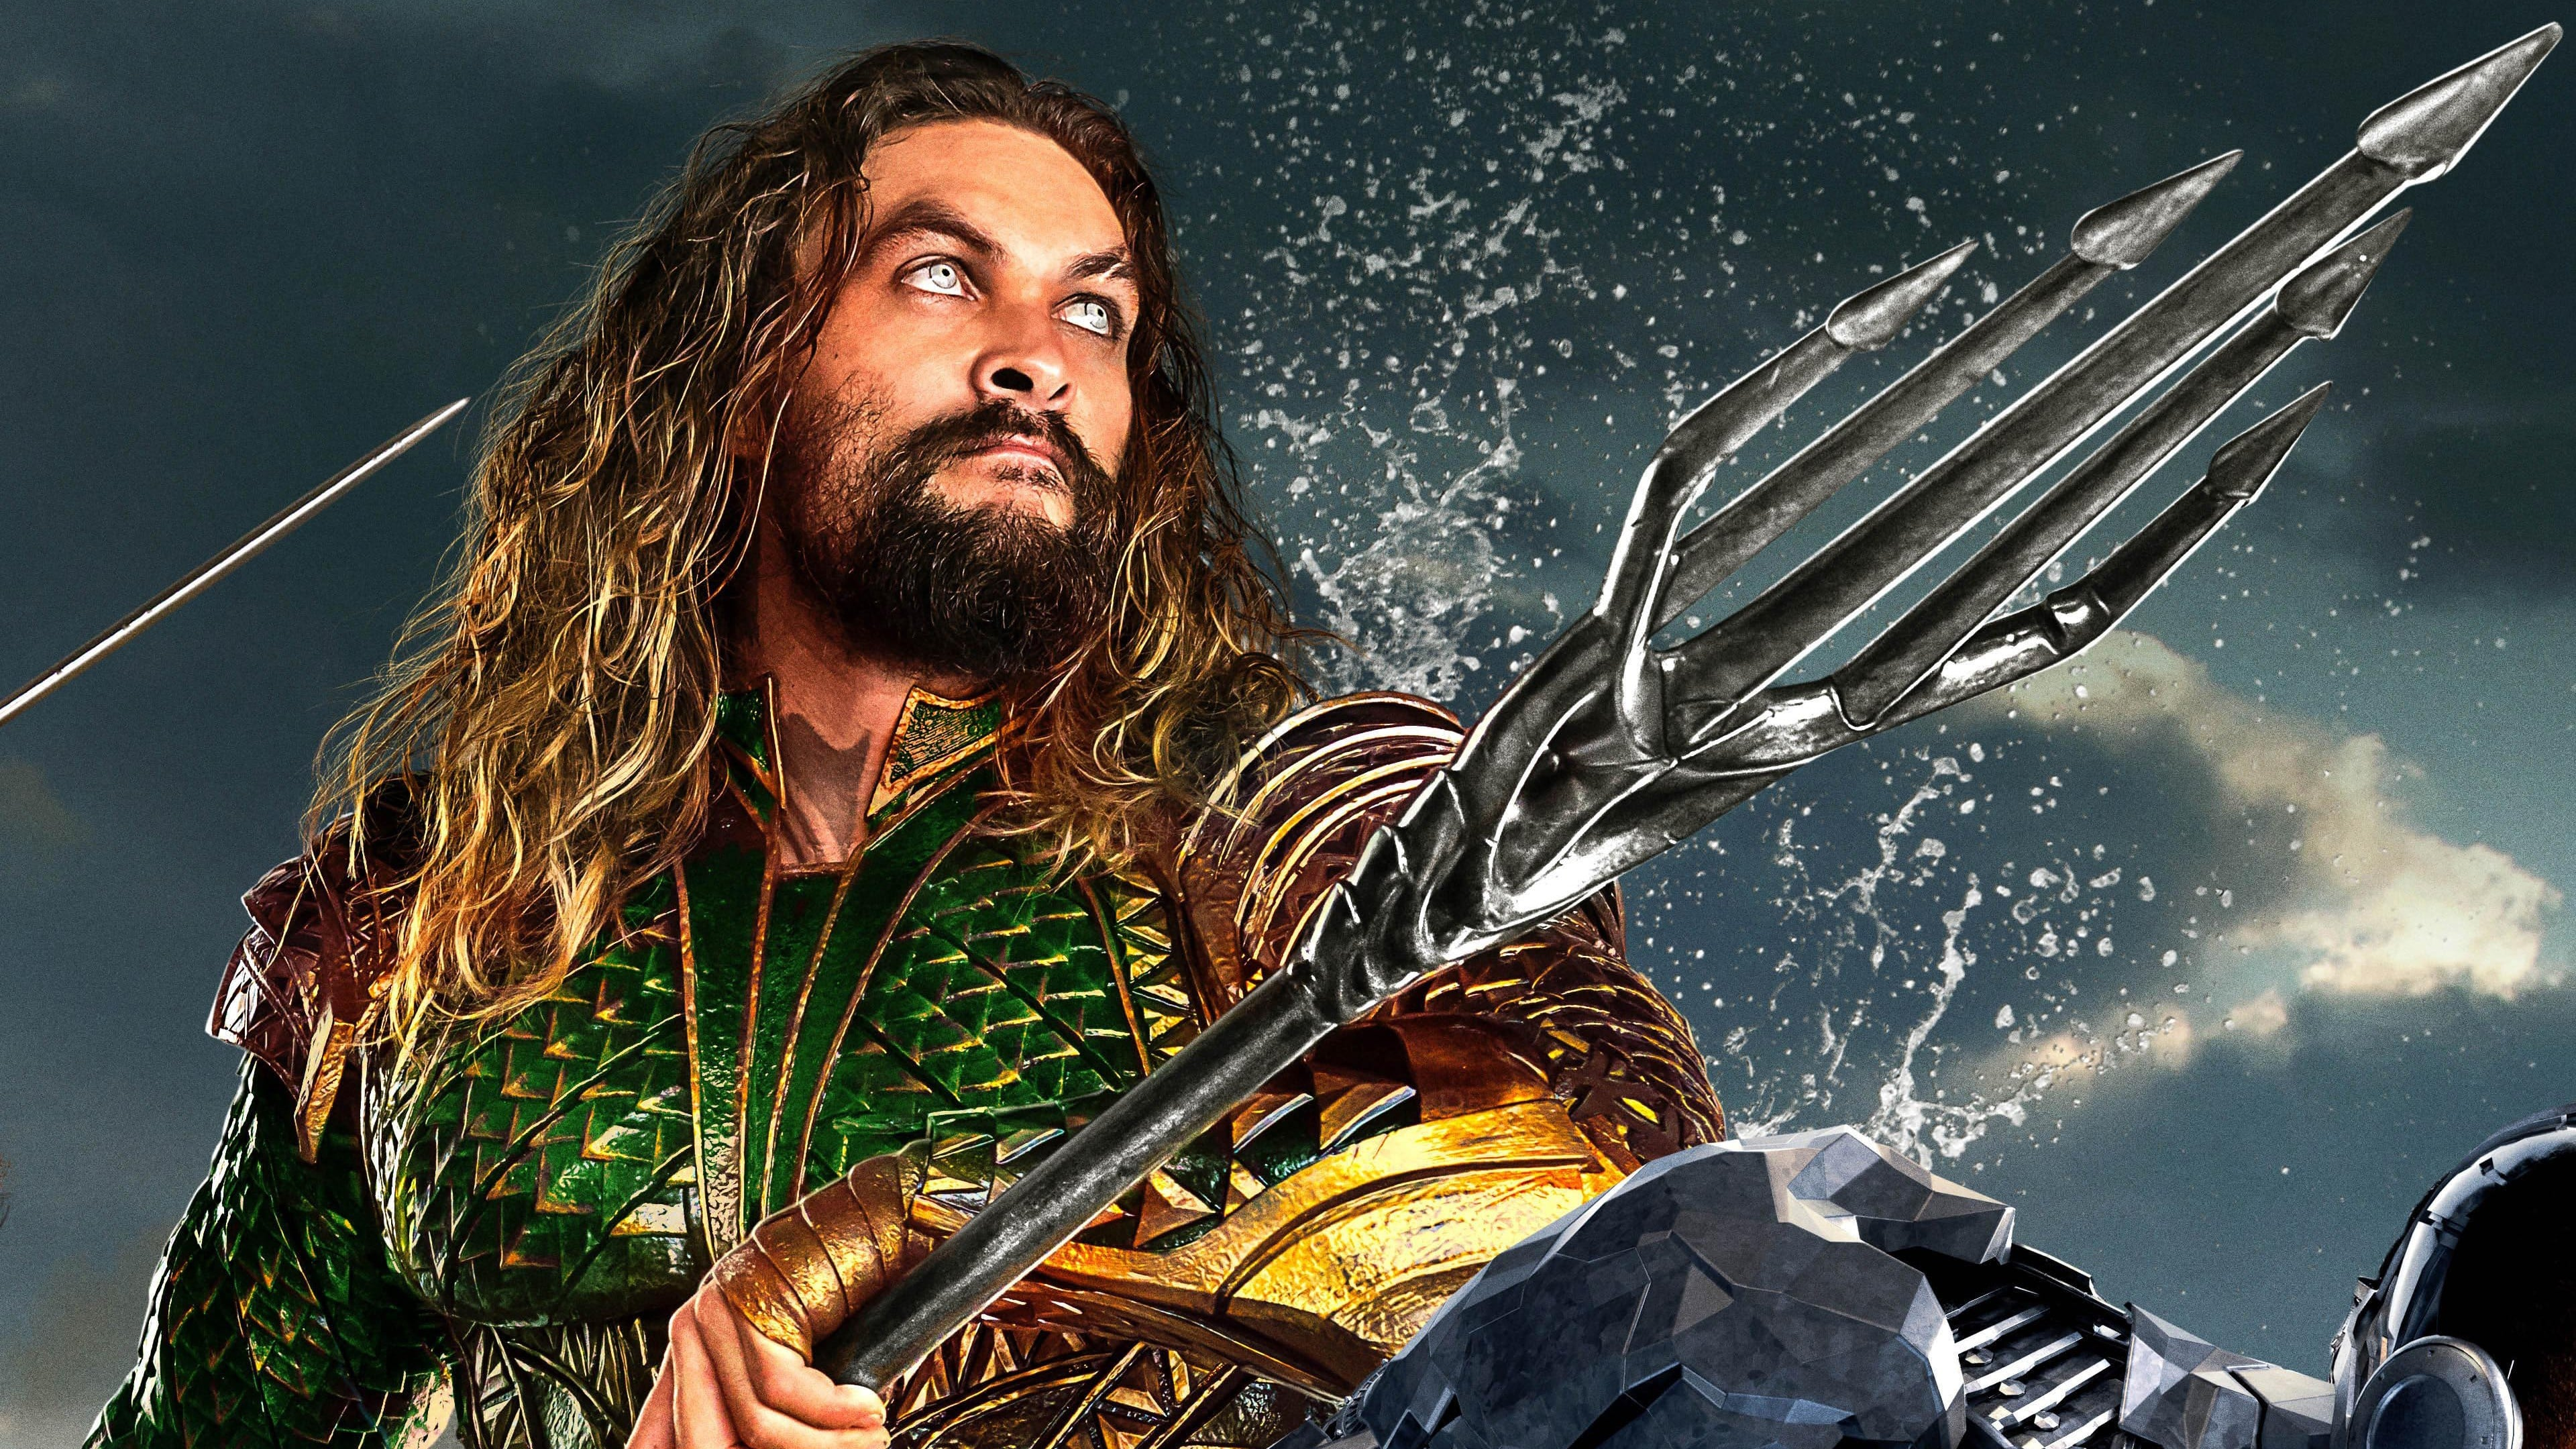 aqua man dc comics jason momoa hd pc mobile desktop wallpaper